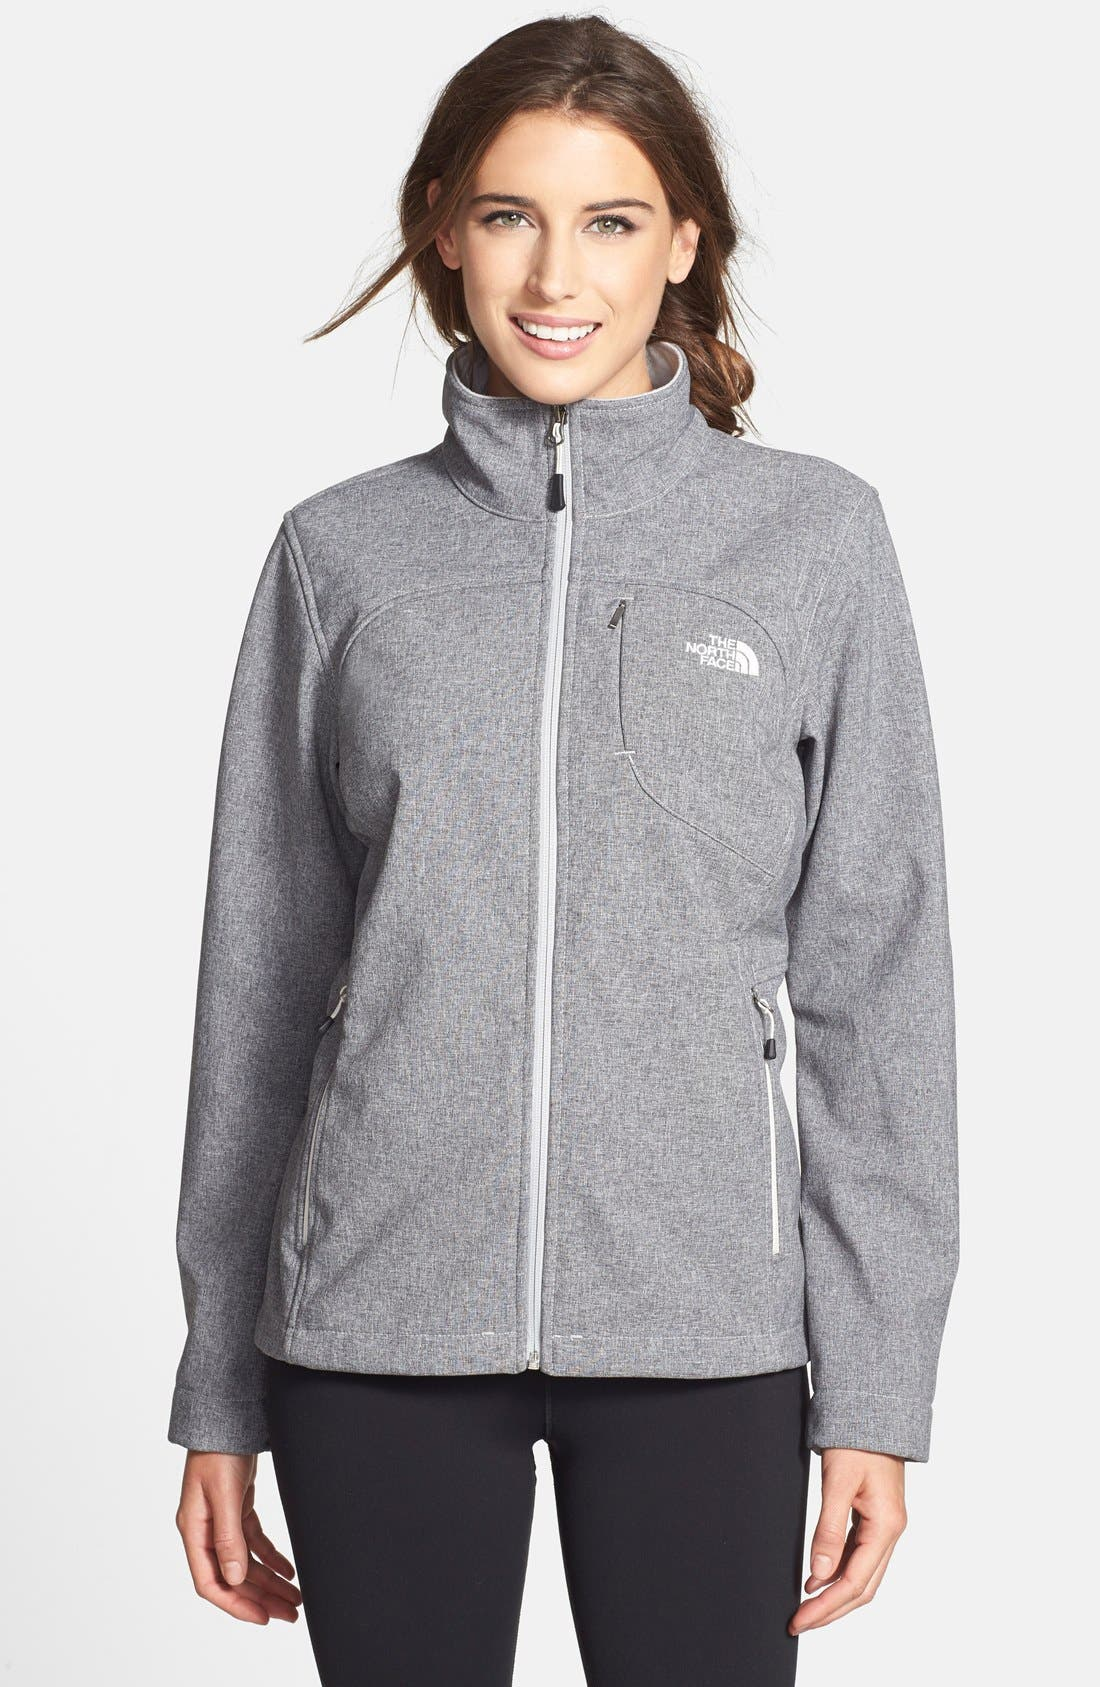 Main Image - The North Face 'Apex Bionic' Jacket